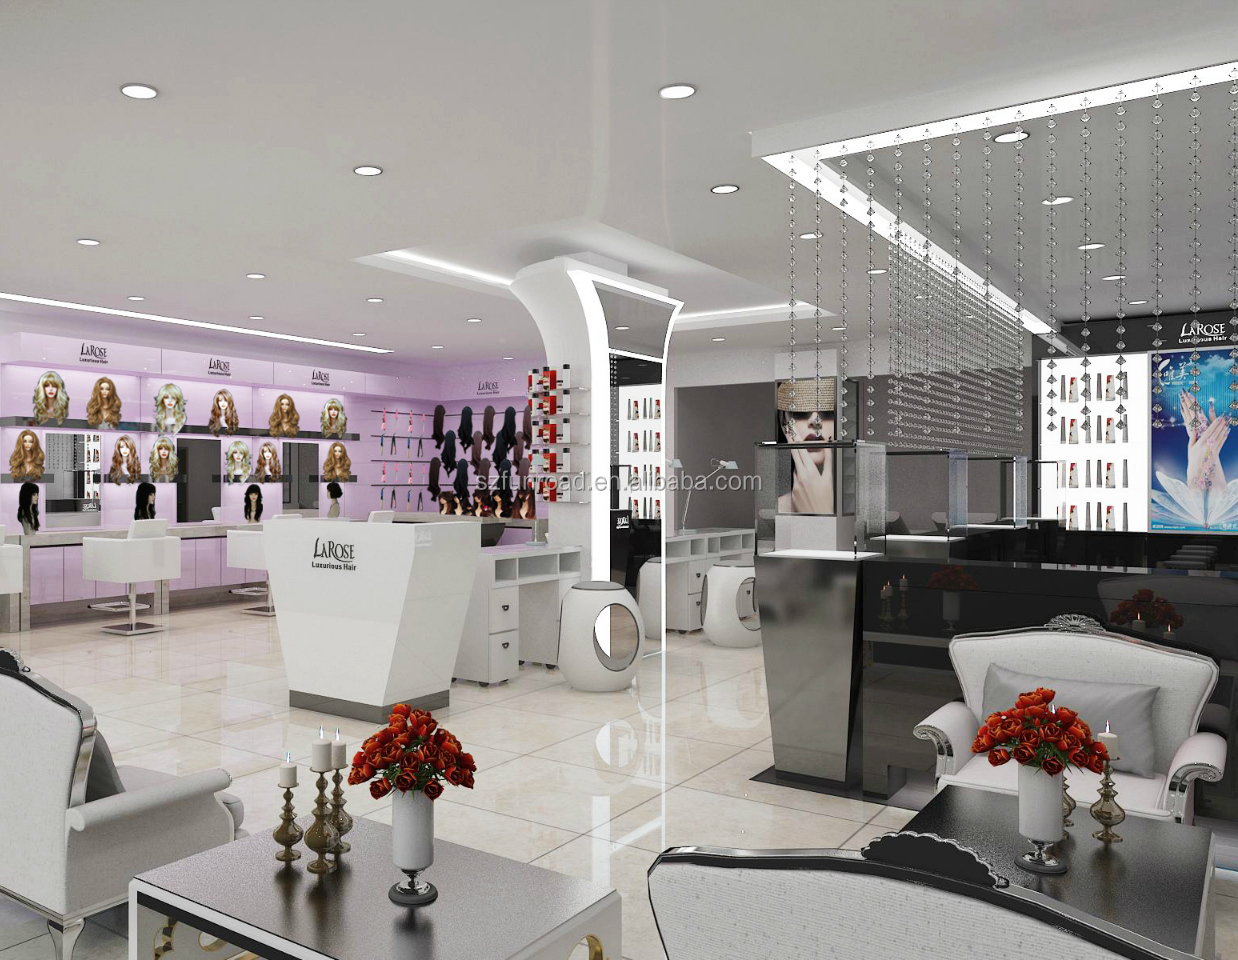 Classic Hair Salon Store Interior Design Barber Shop Furniture For Retail Shop View Hair Salon Store Interior Design Funroad Product Details From Shenzhen Carpentry Family Commercial Furniture Co Ltd On Alibaba Com